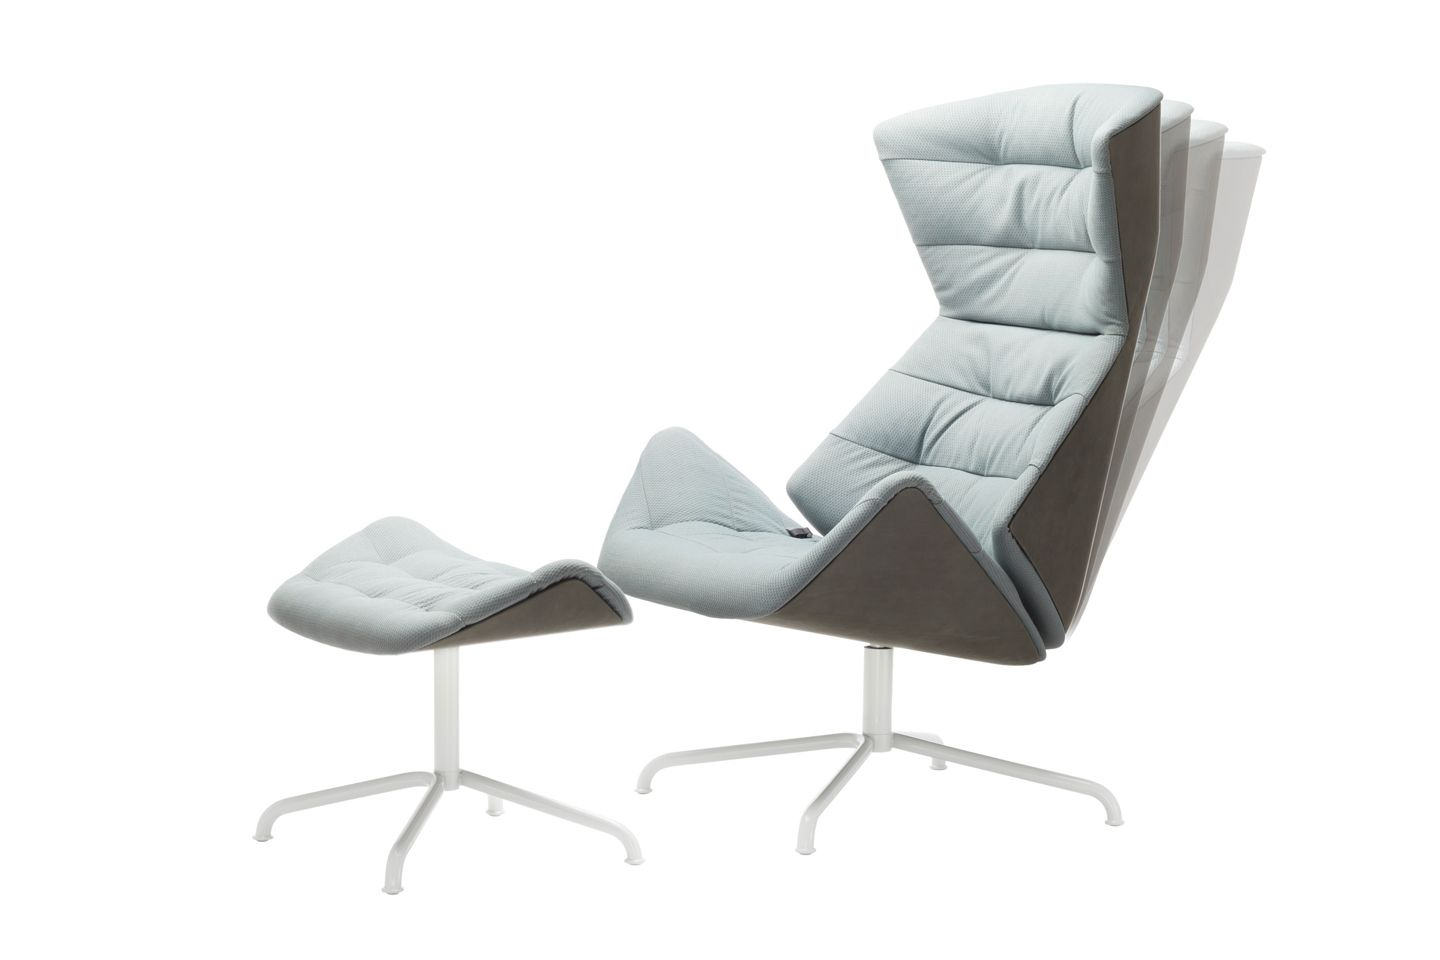 chair design studio leather ultimate lounge by formstelle